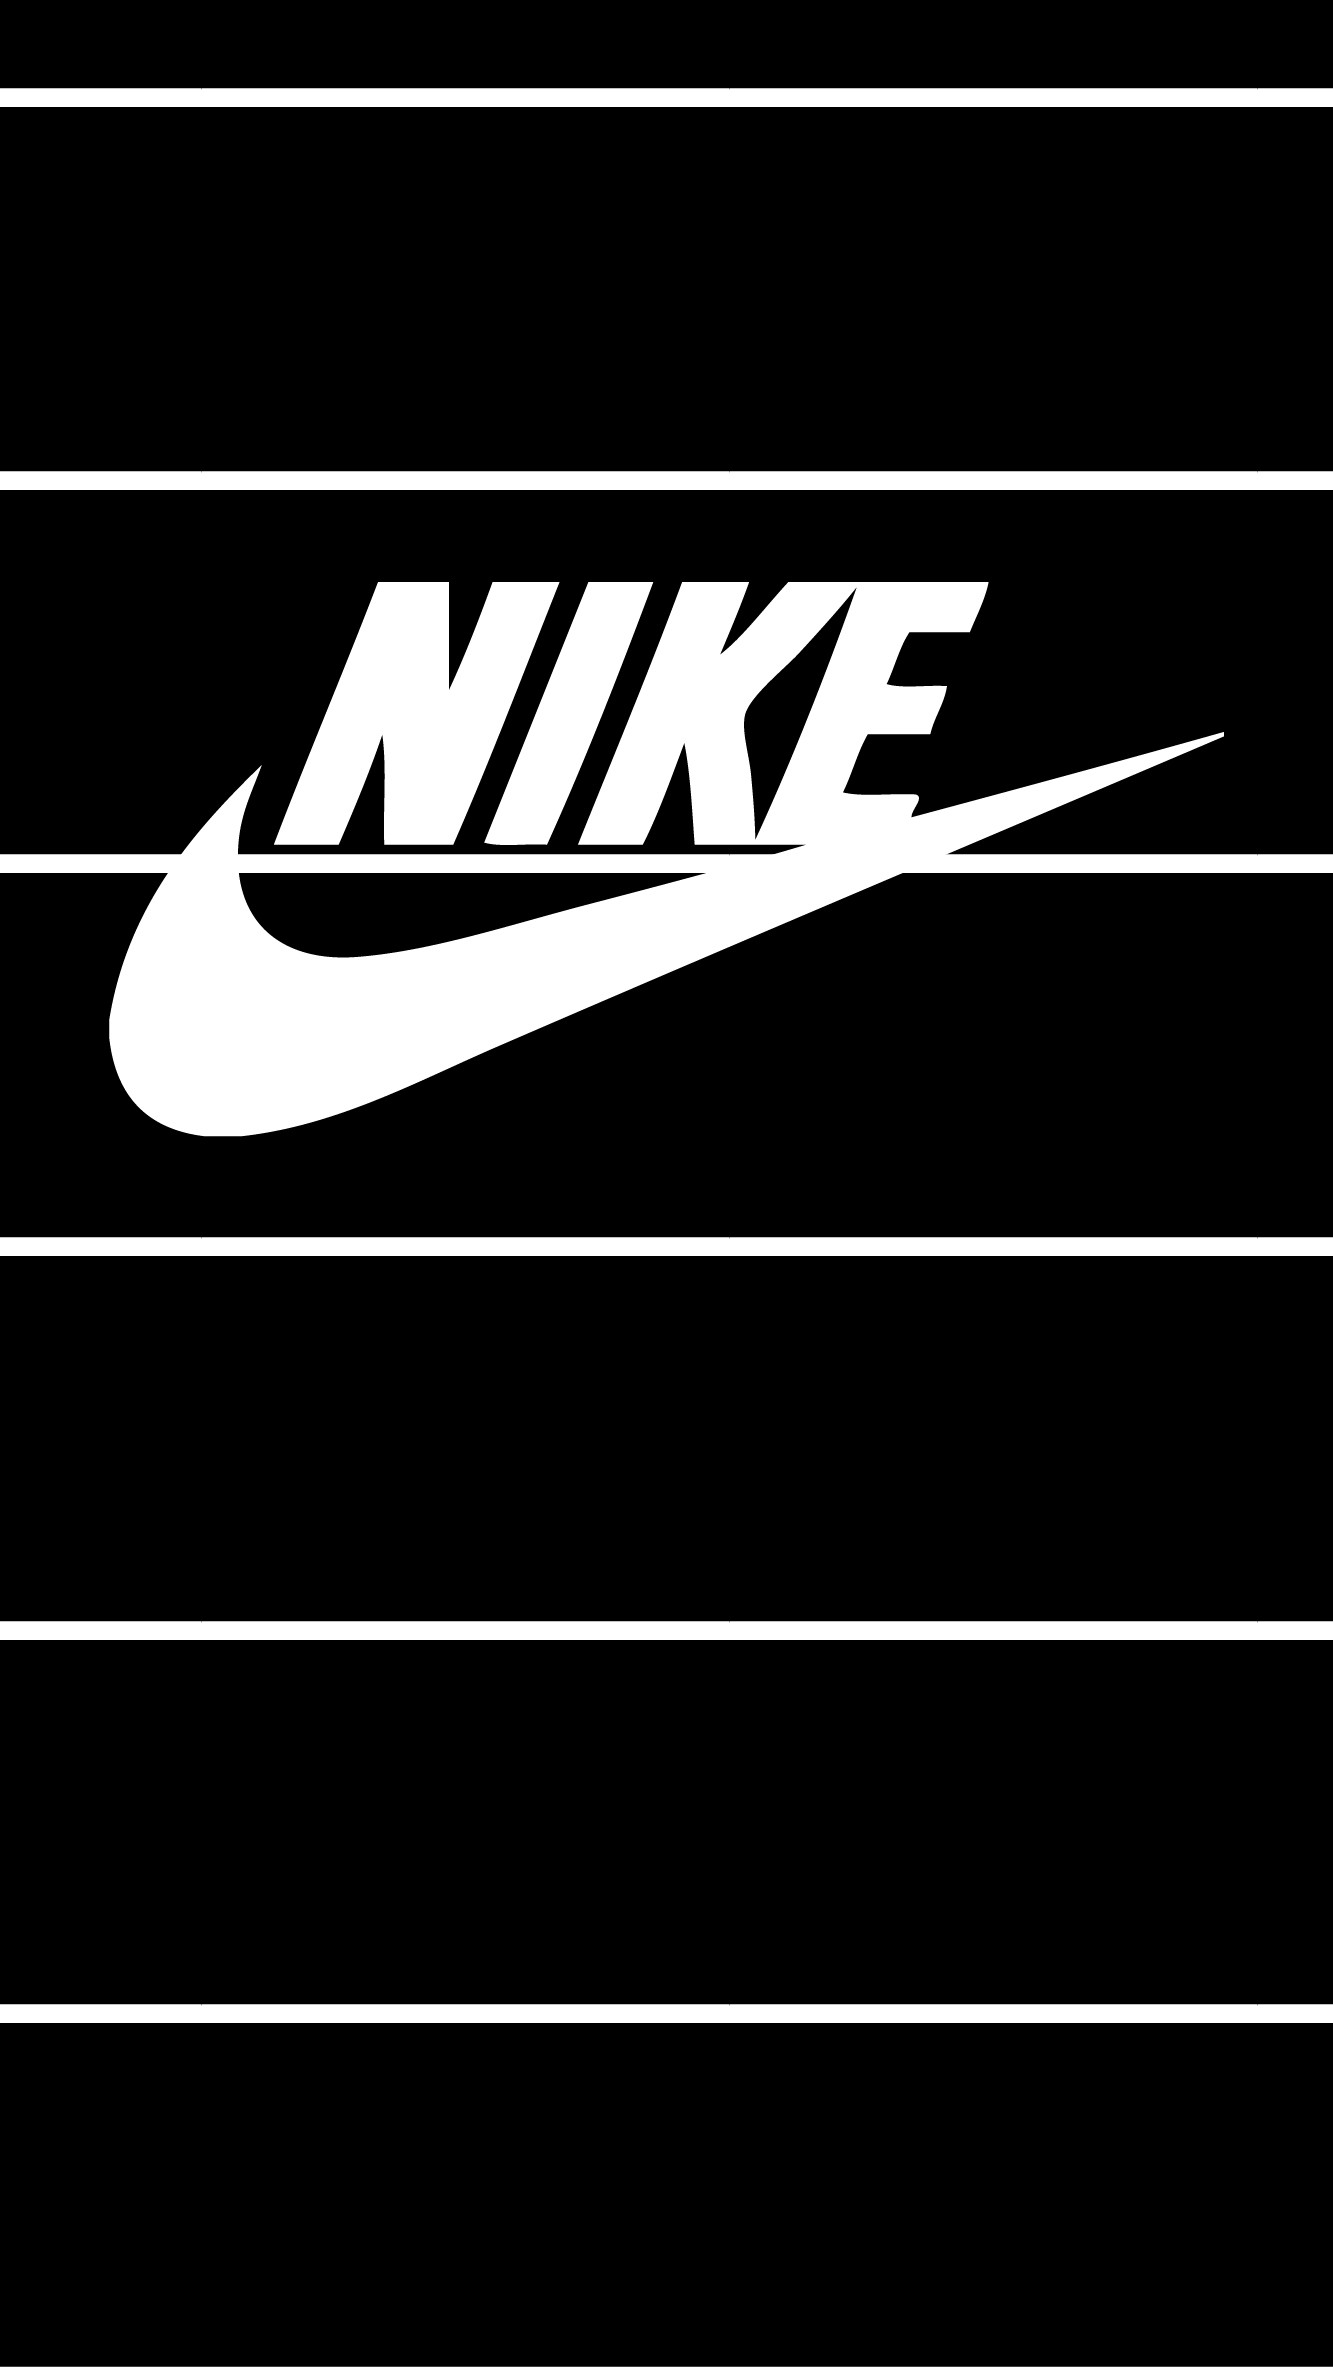 Nike Sb Wallpaper For Iphone 77 Images